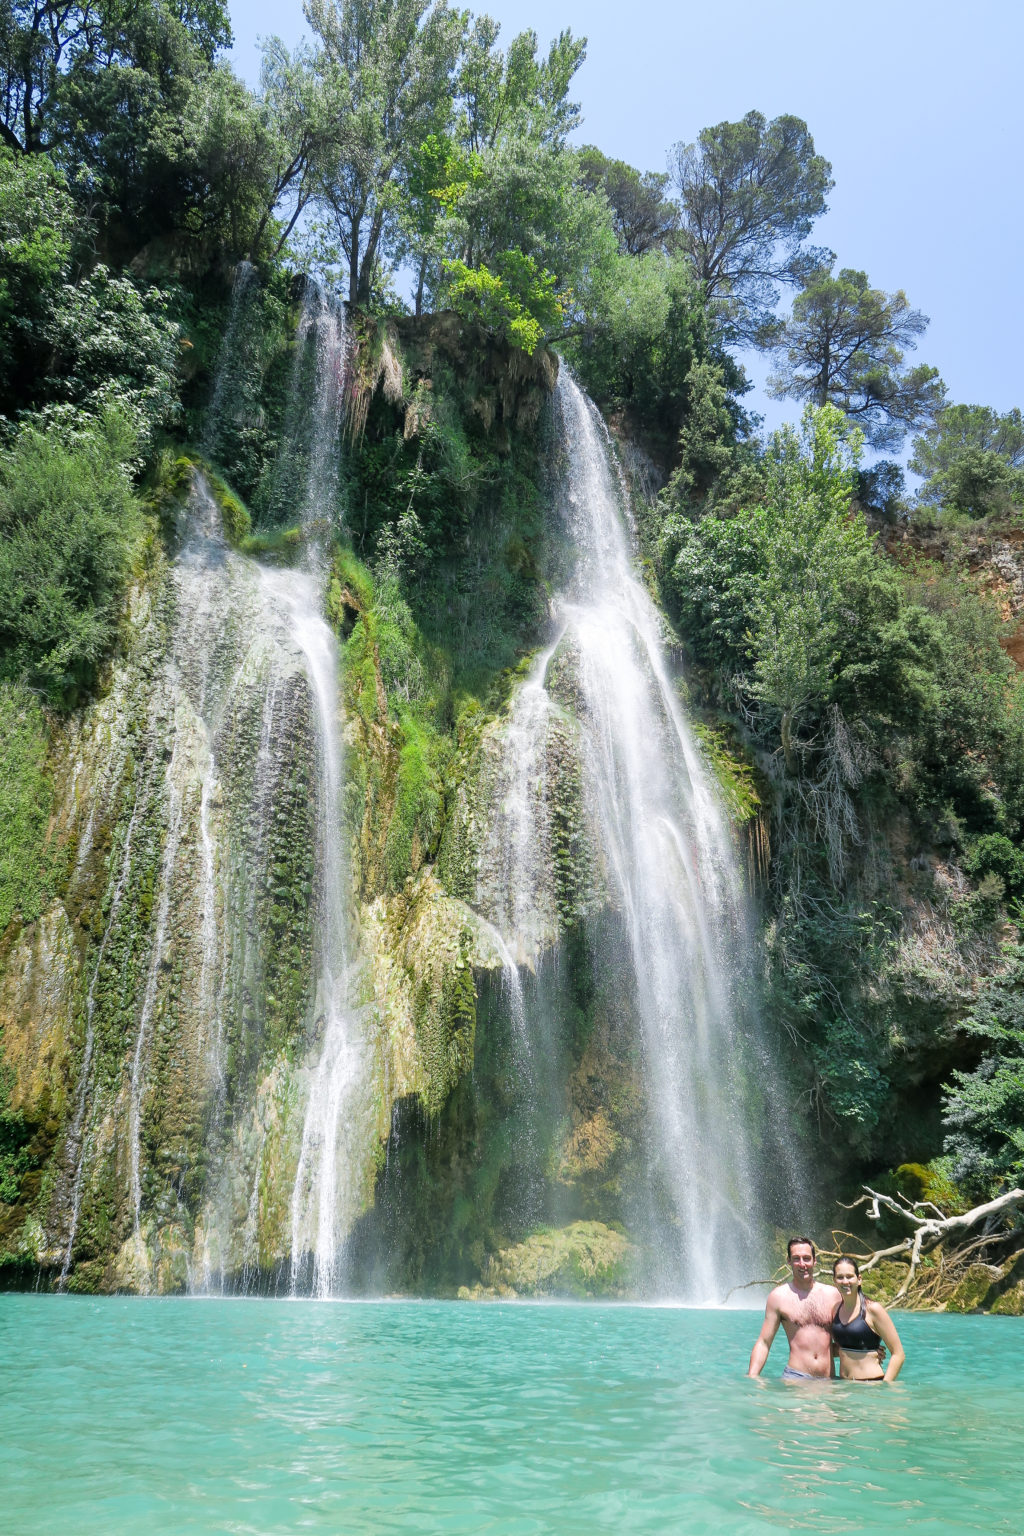 Cascade de Sillans, South of France. Travel Diary by Rosie Andre. (waterfall, nature, france, visit, tourist, tourism, day trip, photographs, photography, visit, natural)